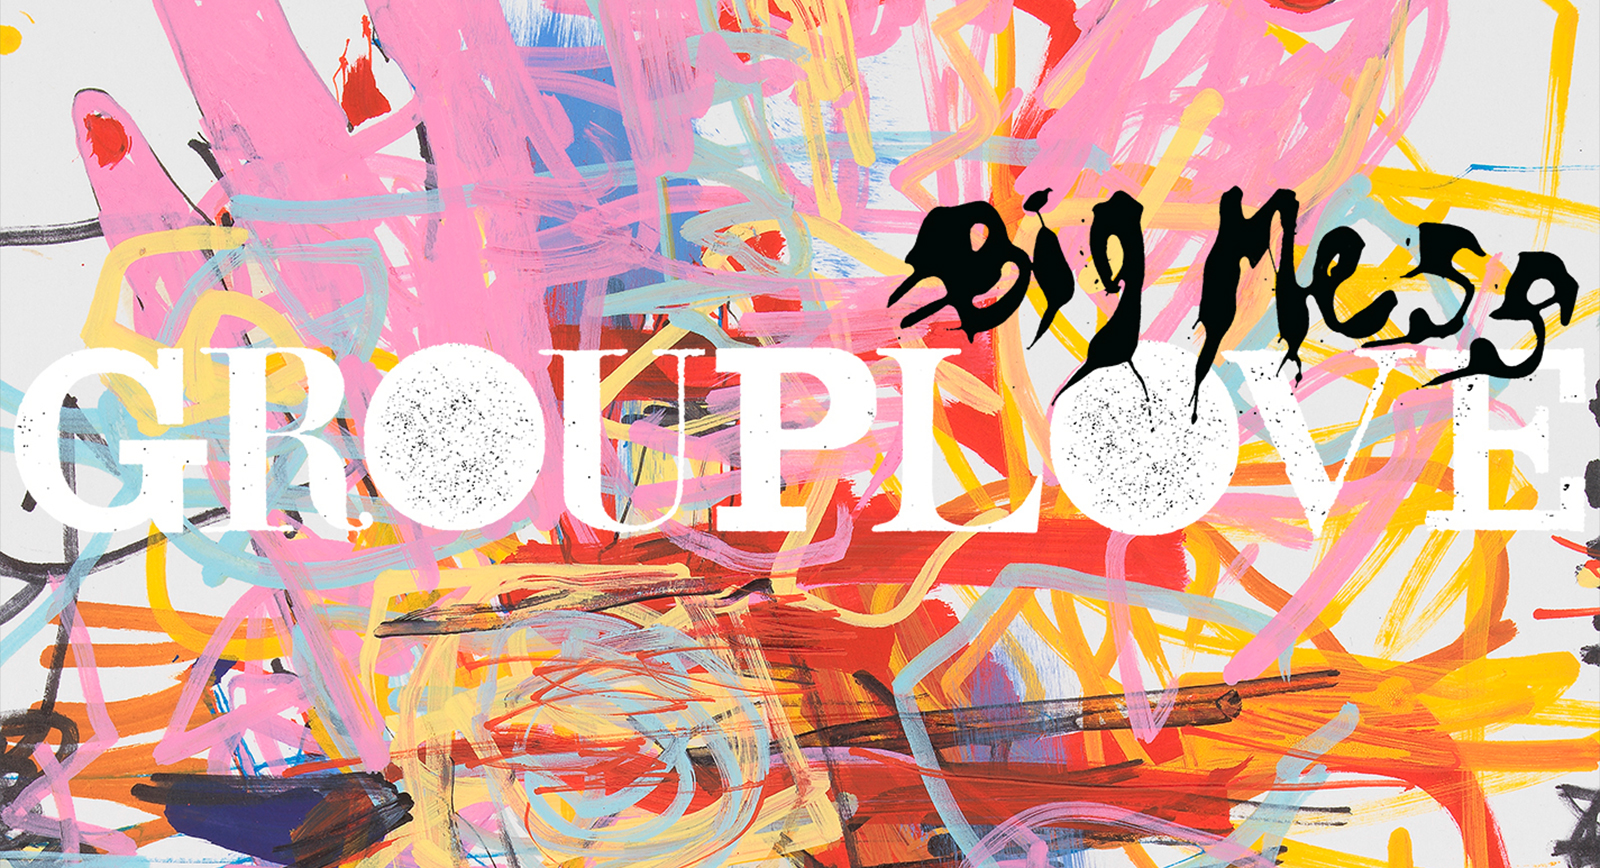 grouplove-big-mess-tour-2016-concert-live-dates-tickets-preview-cities-fi